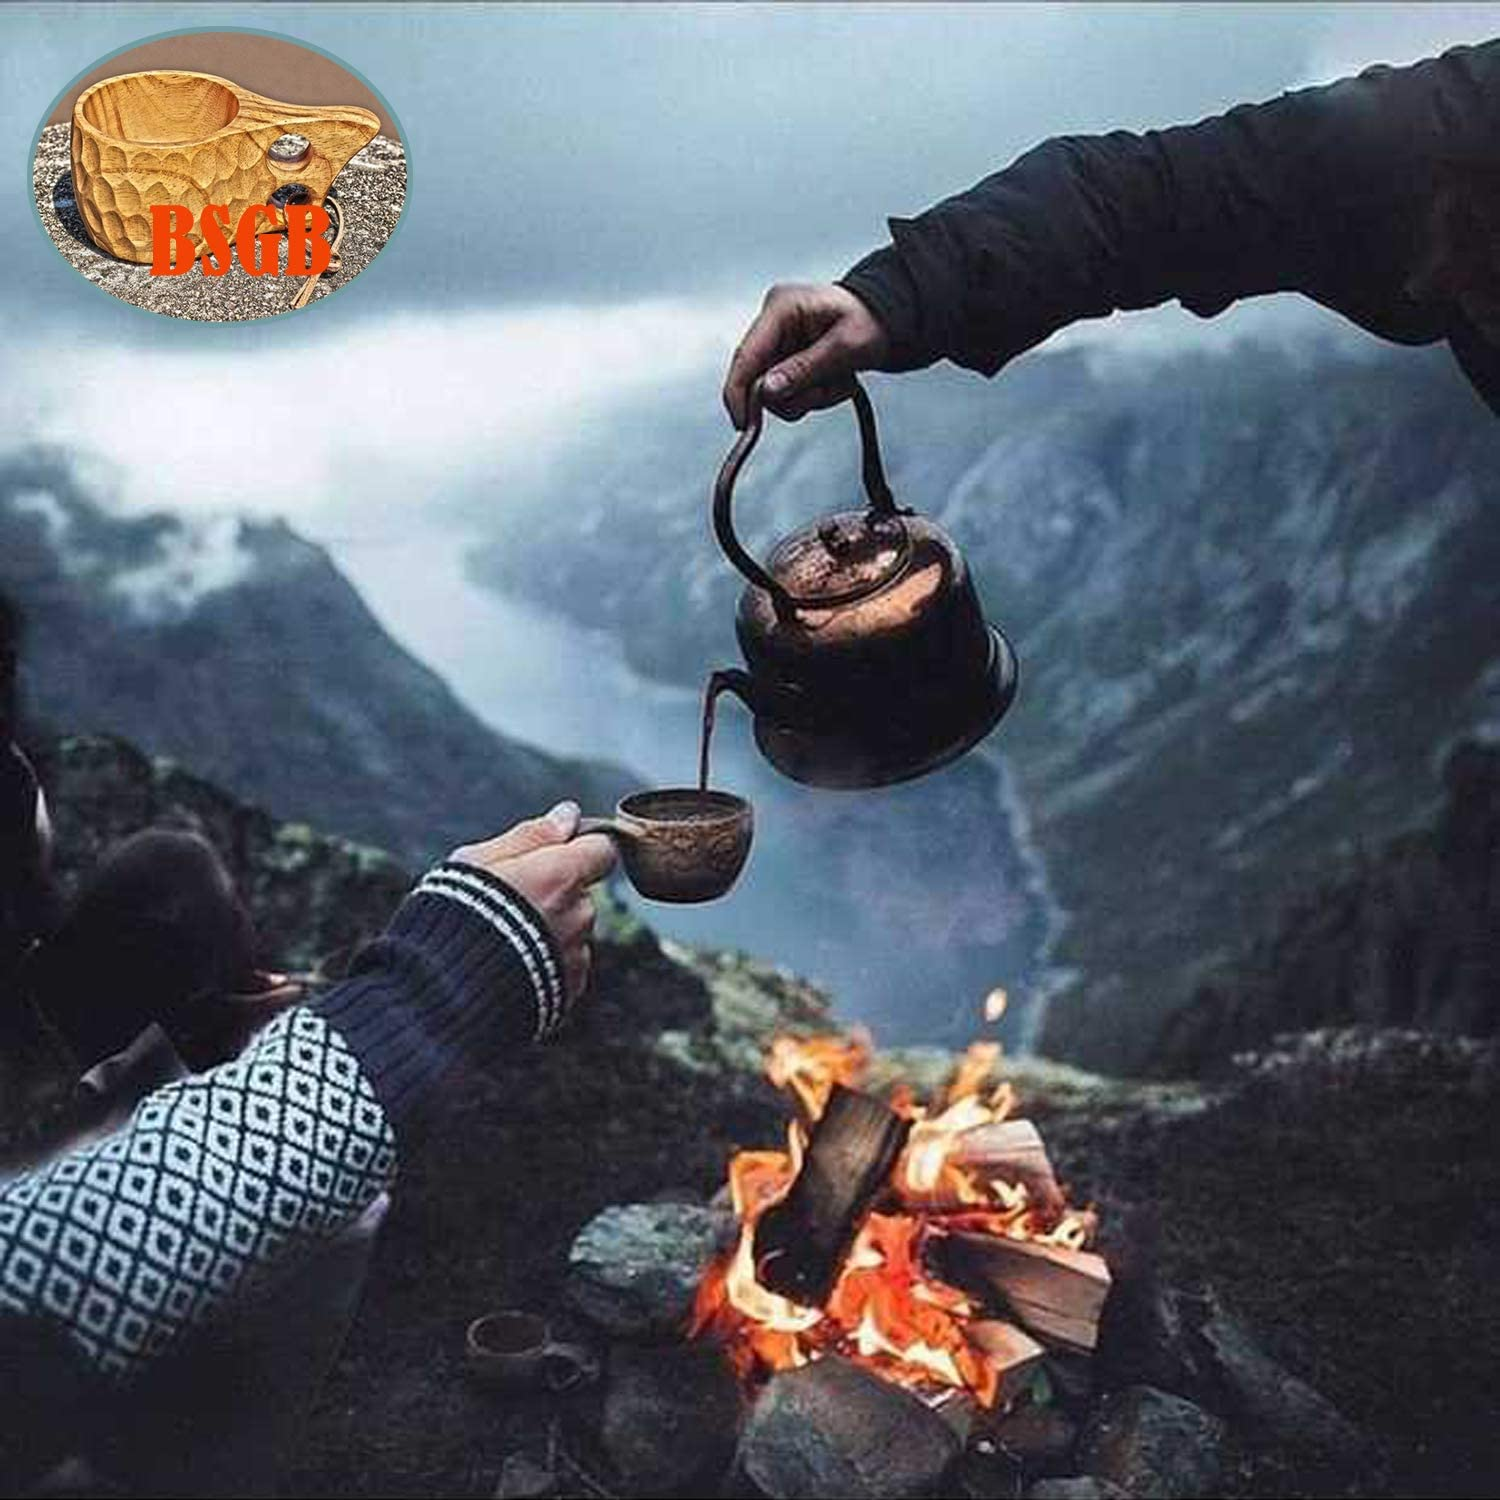 BSGB Wooden Cup Nordic Style Kuksa Portable Outdoor Camping Drinking Cup Traditional Coffee Mug with Leather Lanyard for Backpacking Camping Hiking Survival Teacup